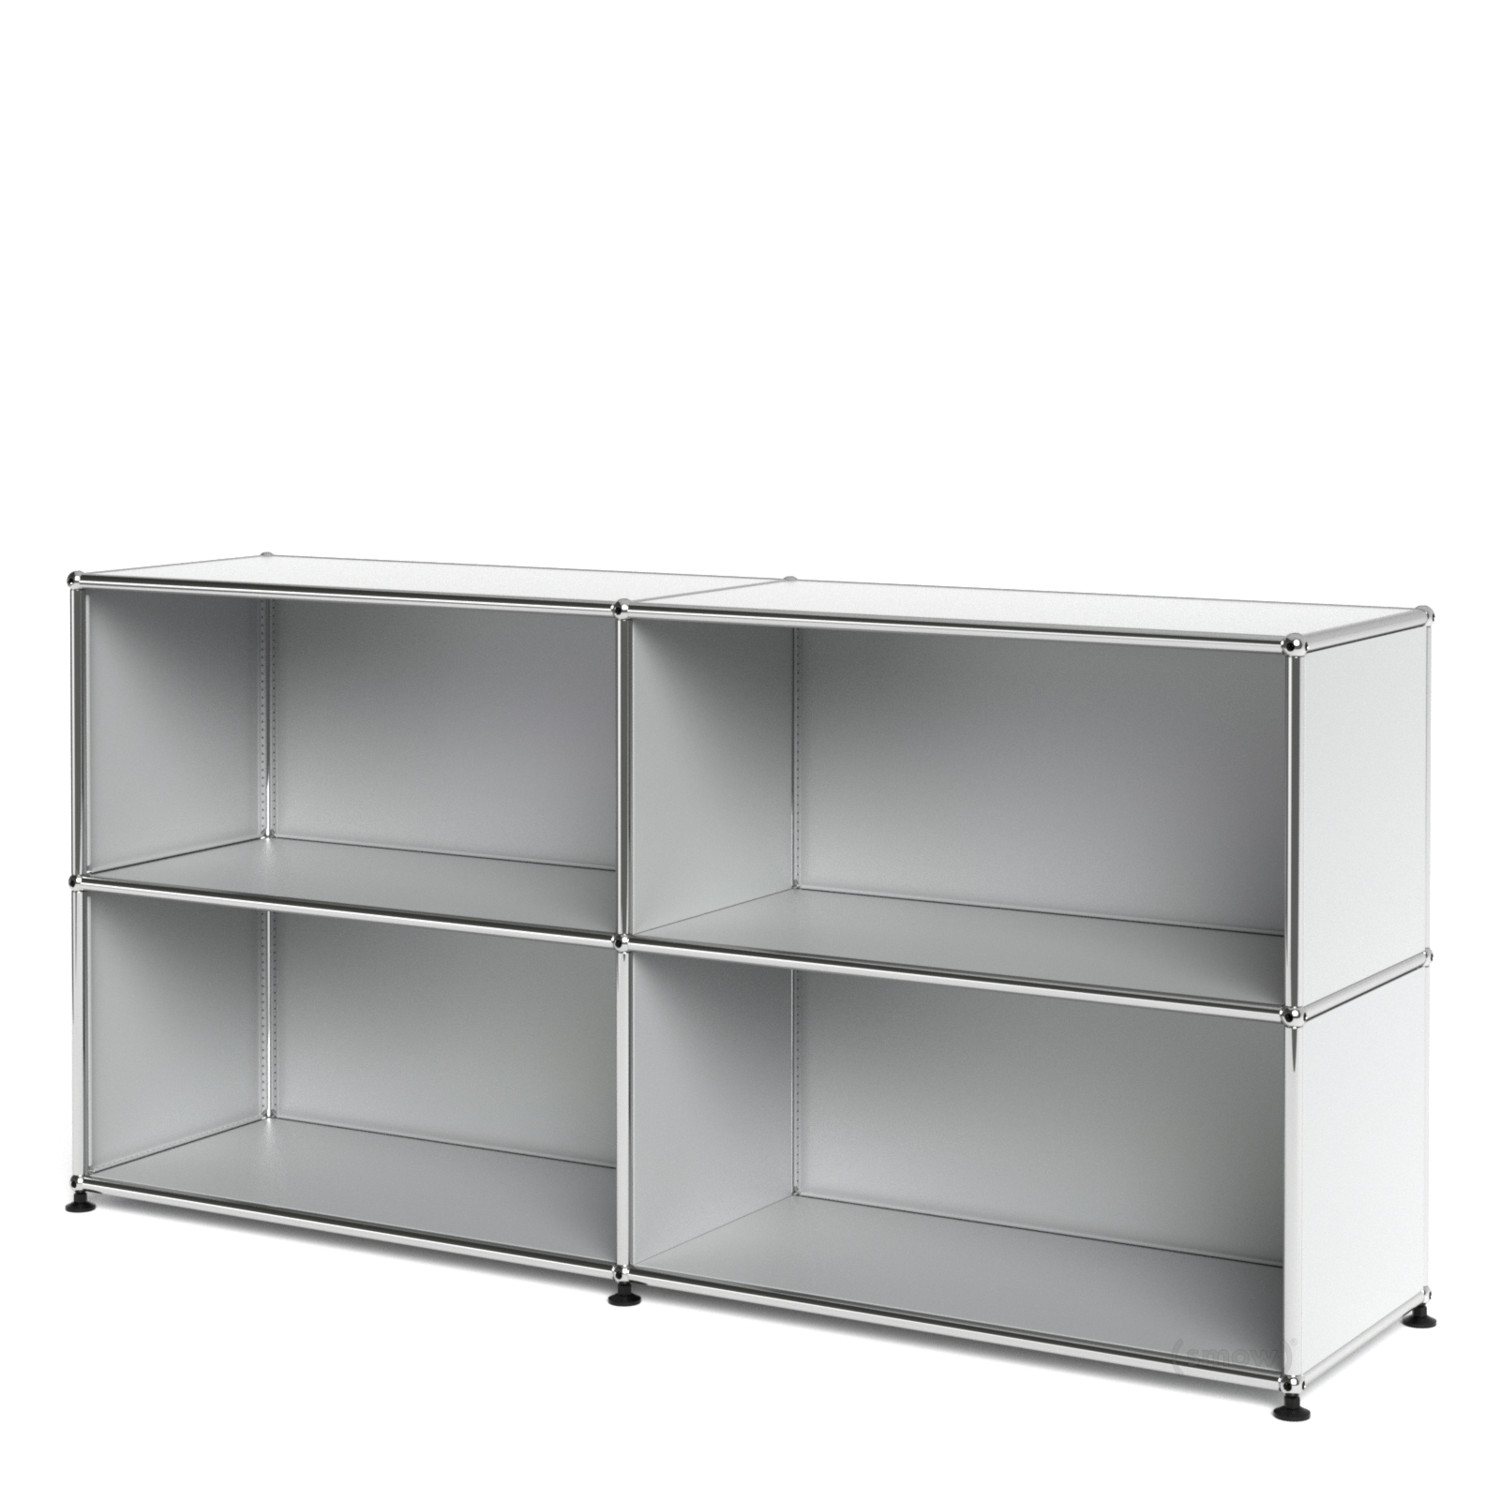 usm haller sideboard l open usm matte silver by fritz haller paul sch rer designer. Black Bedroom Furniture Sets. Home Design Ideas